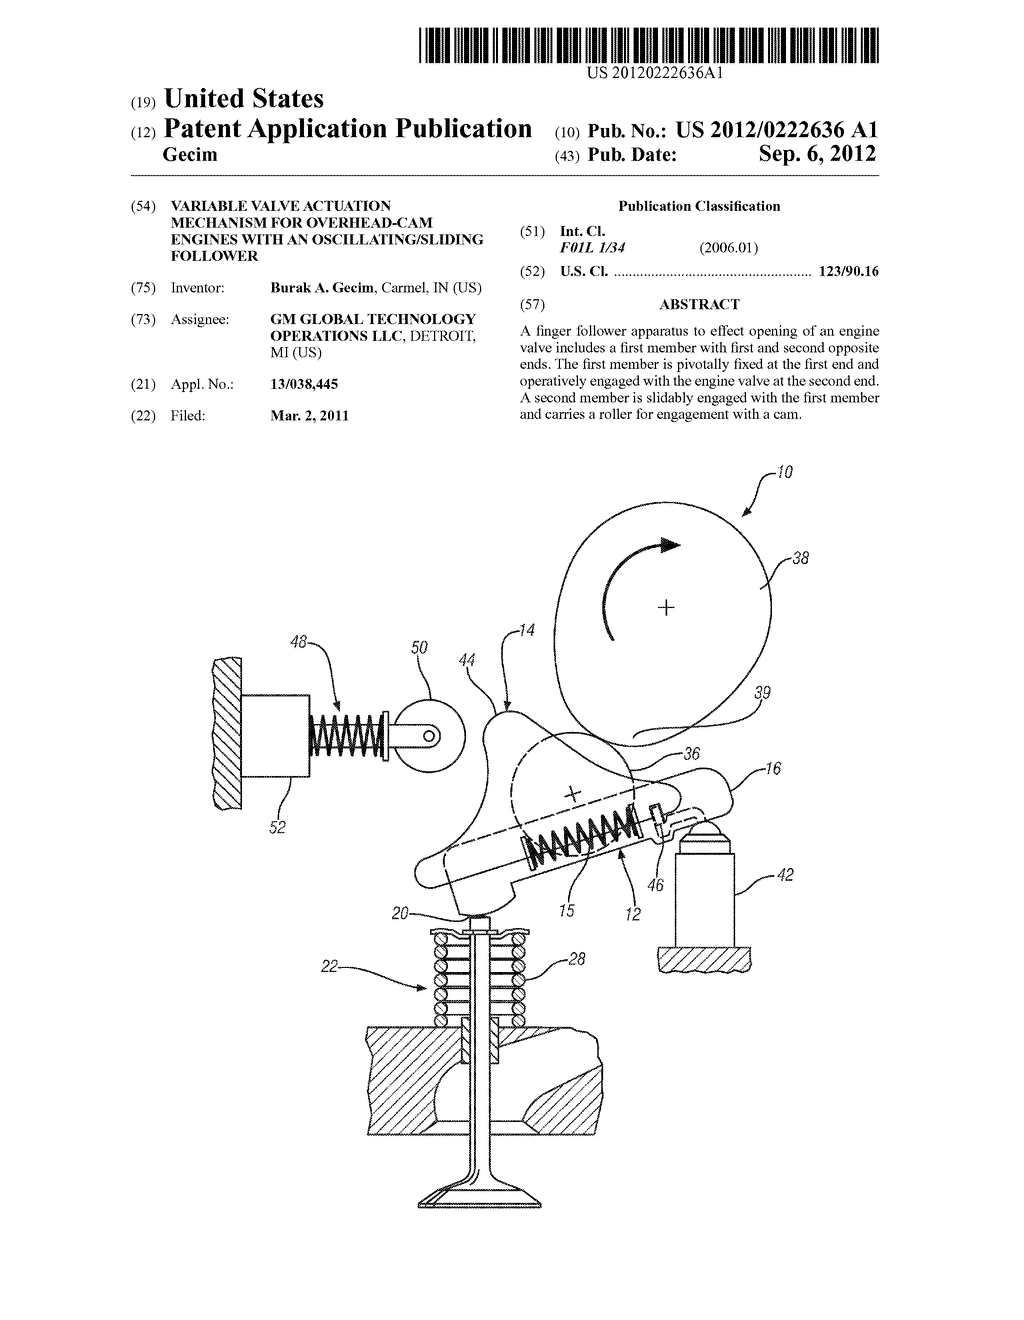 VARIABLE VALVE ACTUATION MECHANISM FOR OVERHEAD-CAM ENGINES WITH AN  OSCILLATING/SLIDING FOLLOWER - diagram, schematic, and image 01